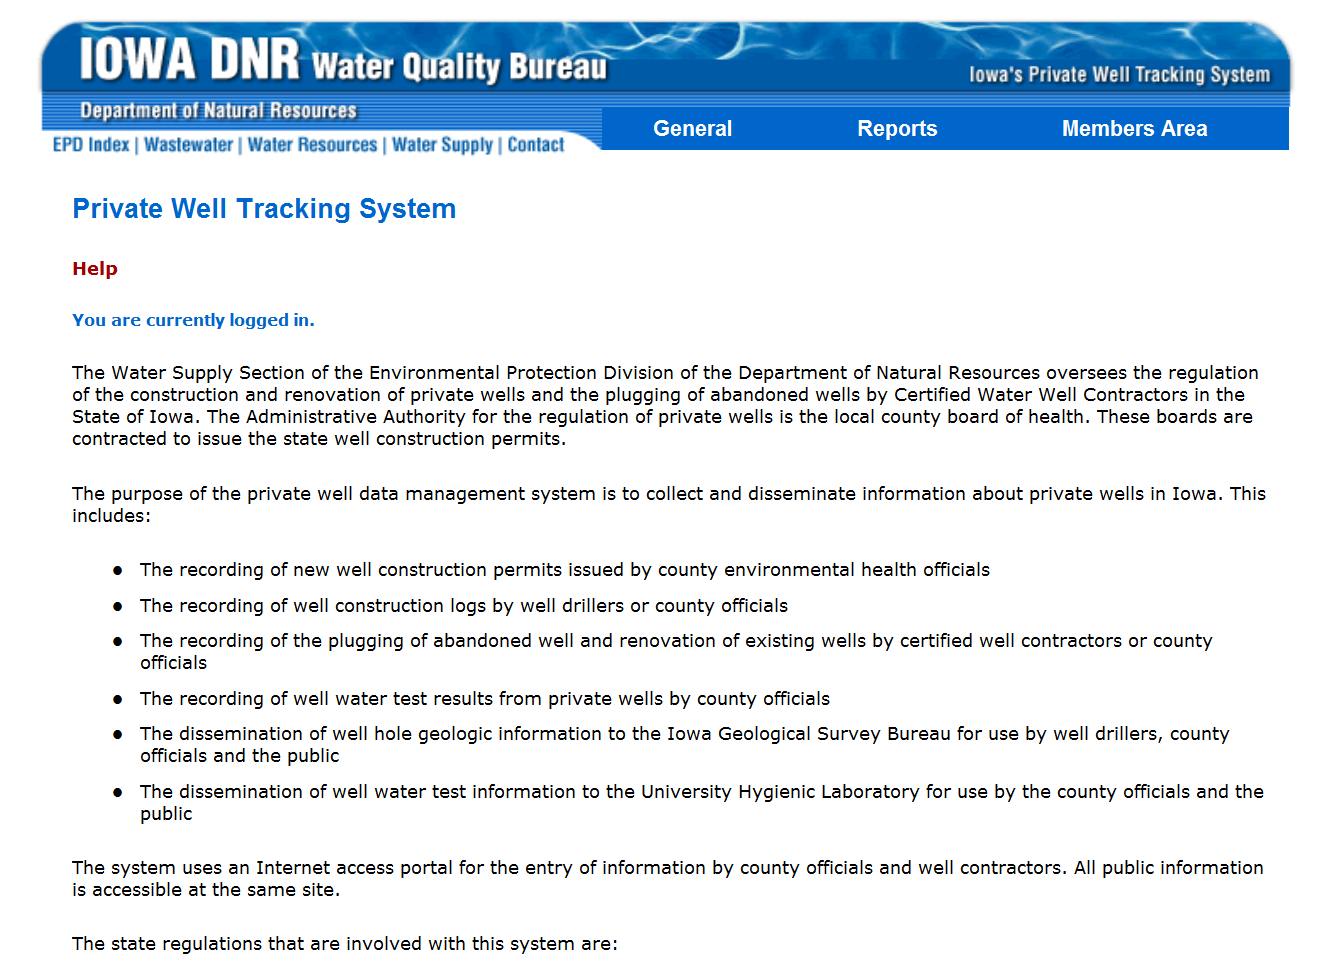 Iowa DNR Private Well Tracking System Database screen image